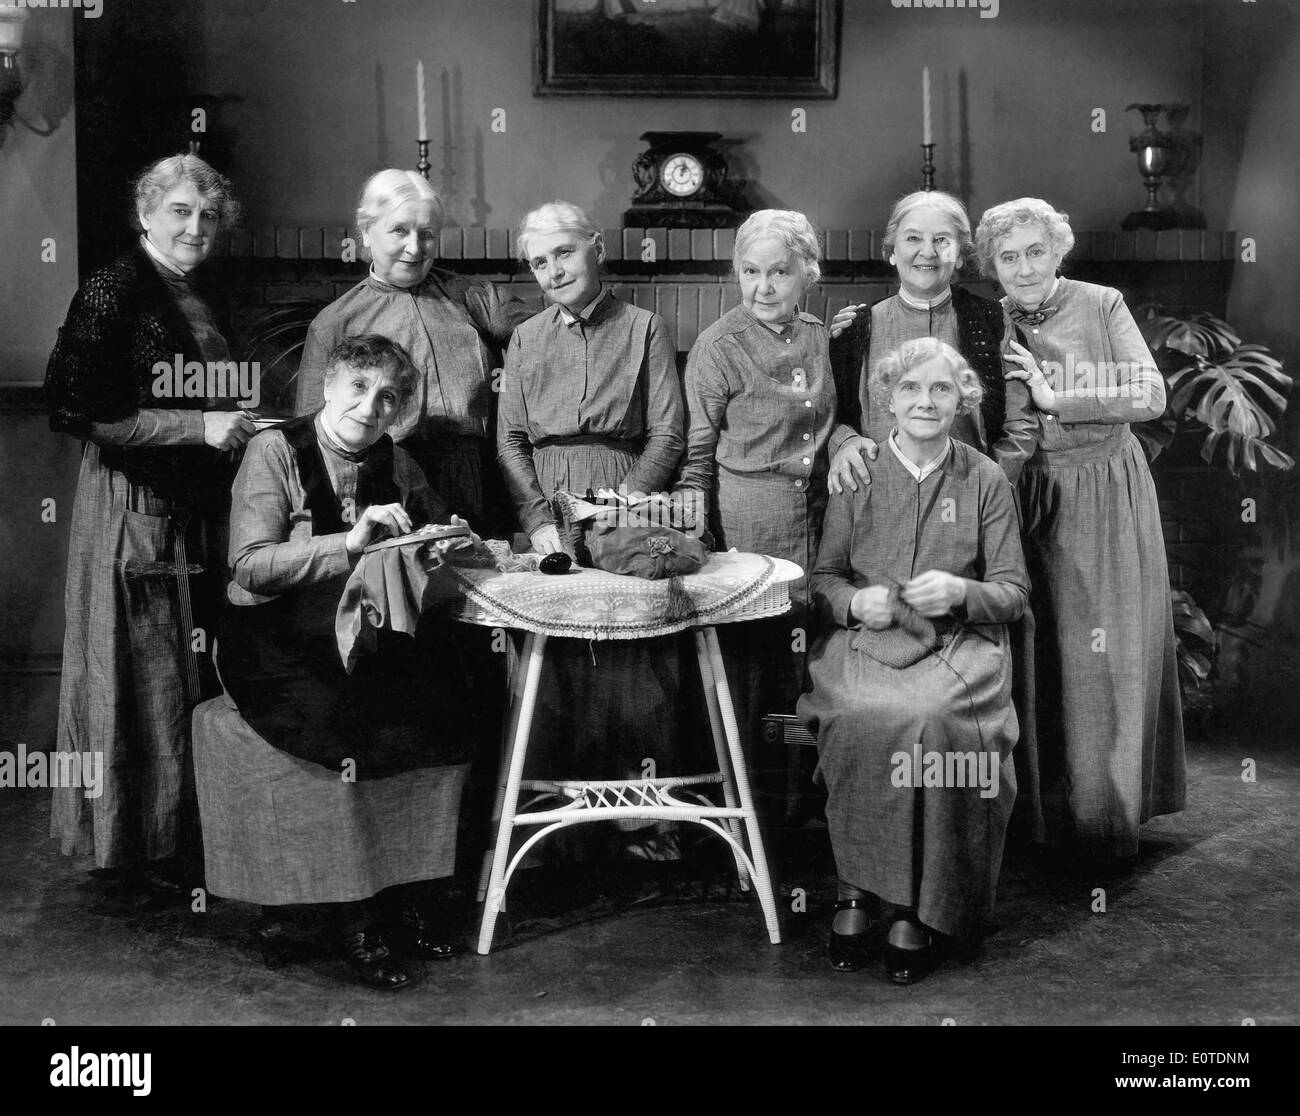 (Standing) Tempe Pigott, Margaret Mann, Emma Tansey, Effie Ellsler, May Robson & Ida Lewis (Standing), Clara Bracy &Edith Yorke (Seated), on-set of the Film, 'If I had a Million', 1932 - Stock Image